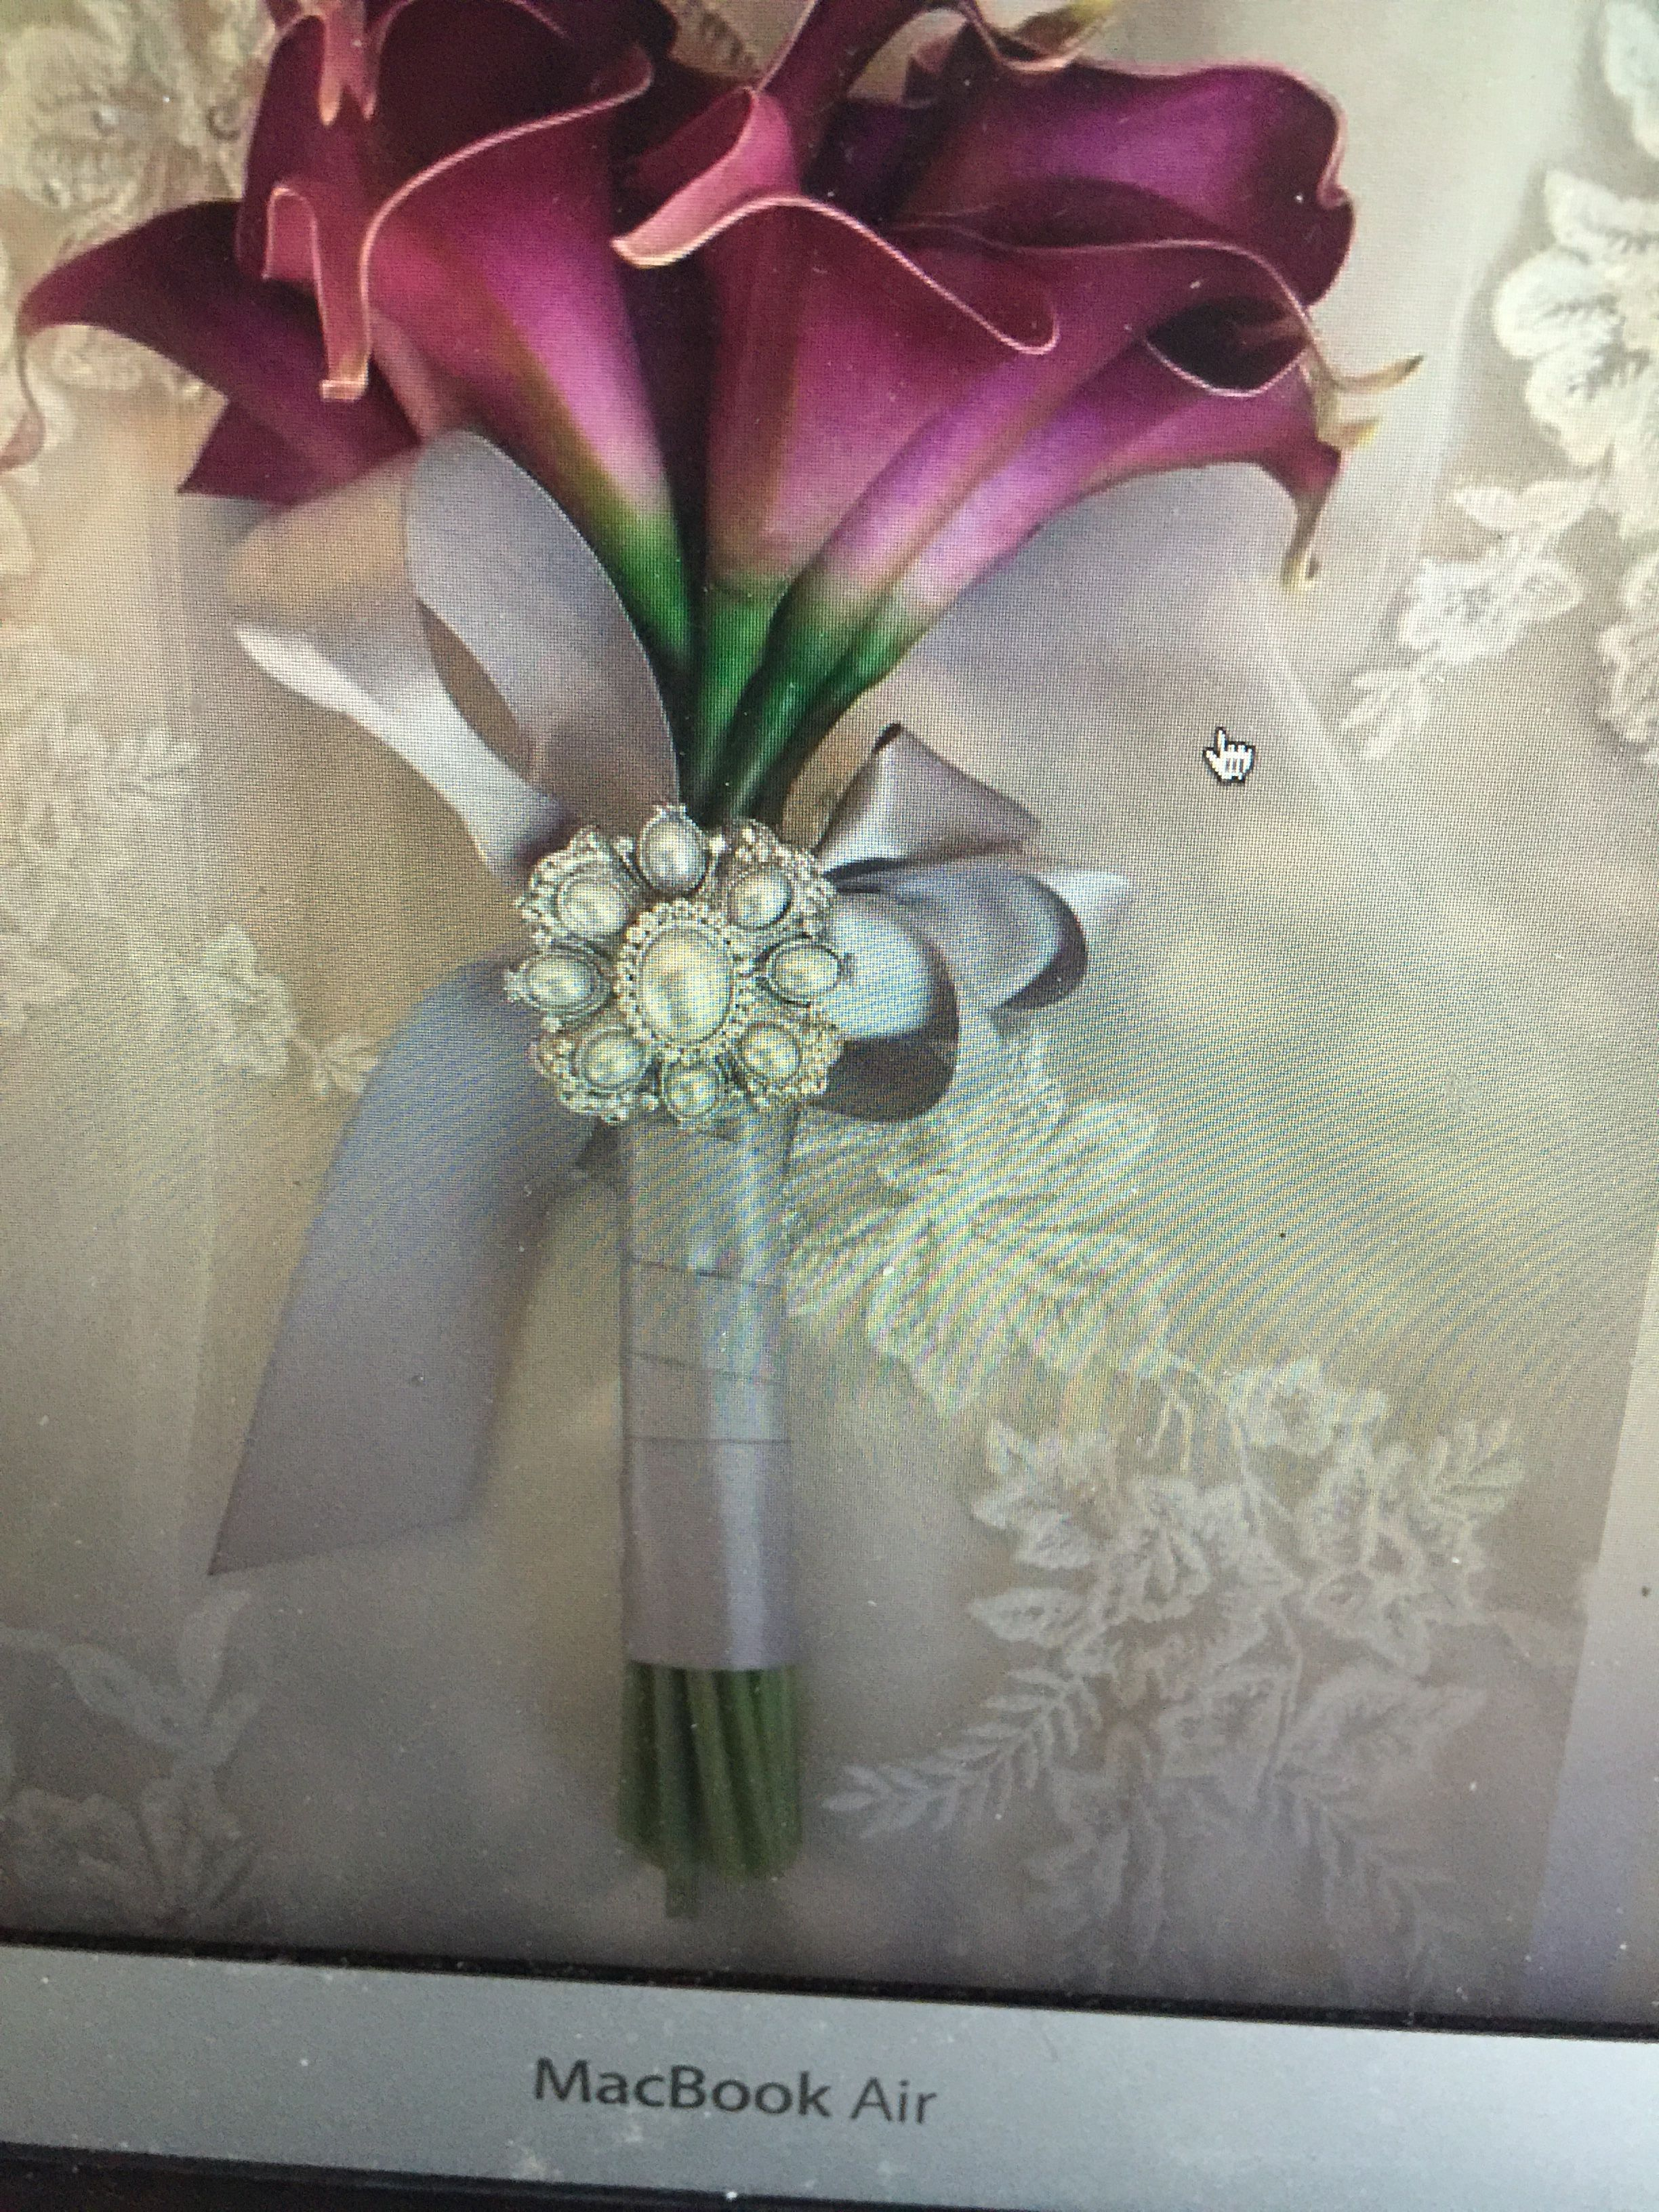 Pin by penny l brown on bouquet holder pinterest bouquet holder bouquet holder izmirmasajfo